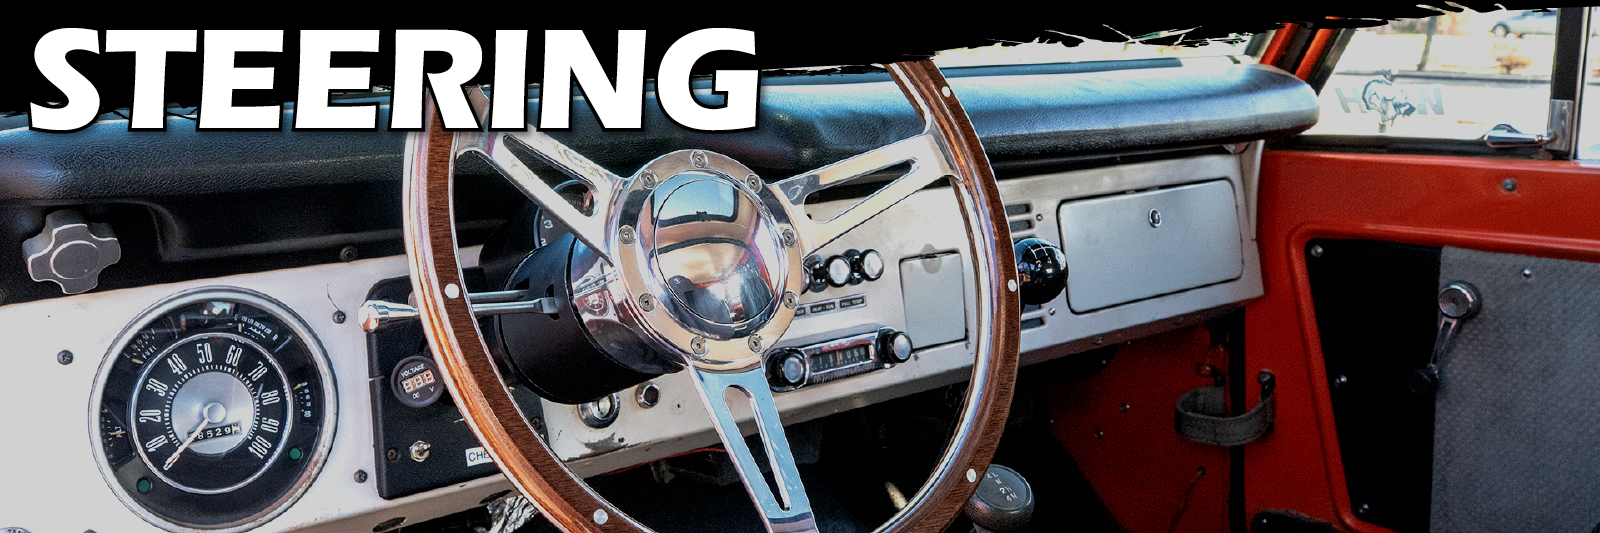 STEERING WHEELS - STOCK